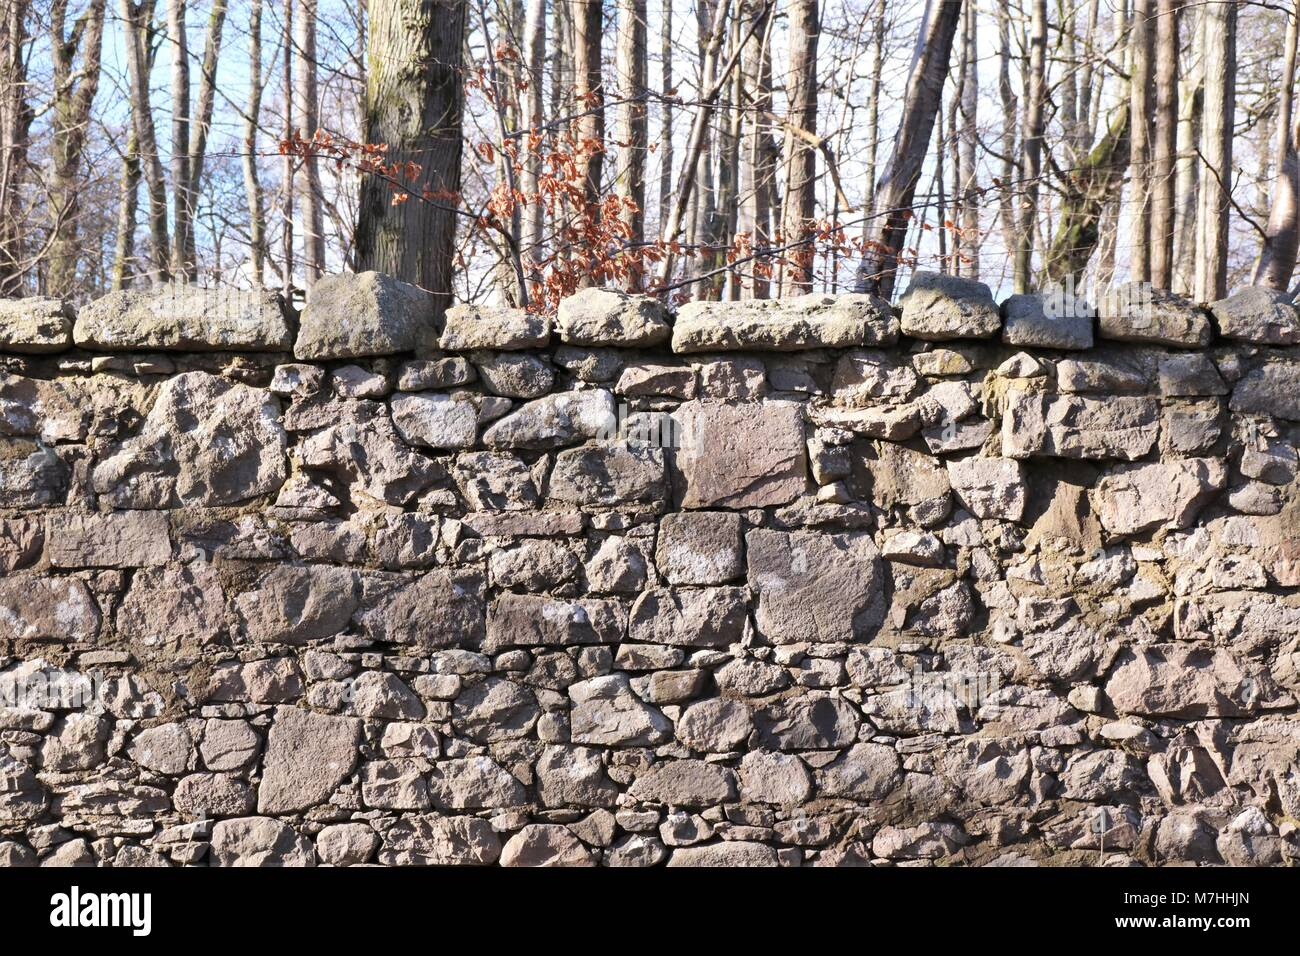 Stone wall barrier, obstacle, difficulty - Stock Image